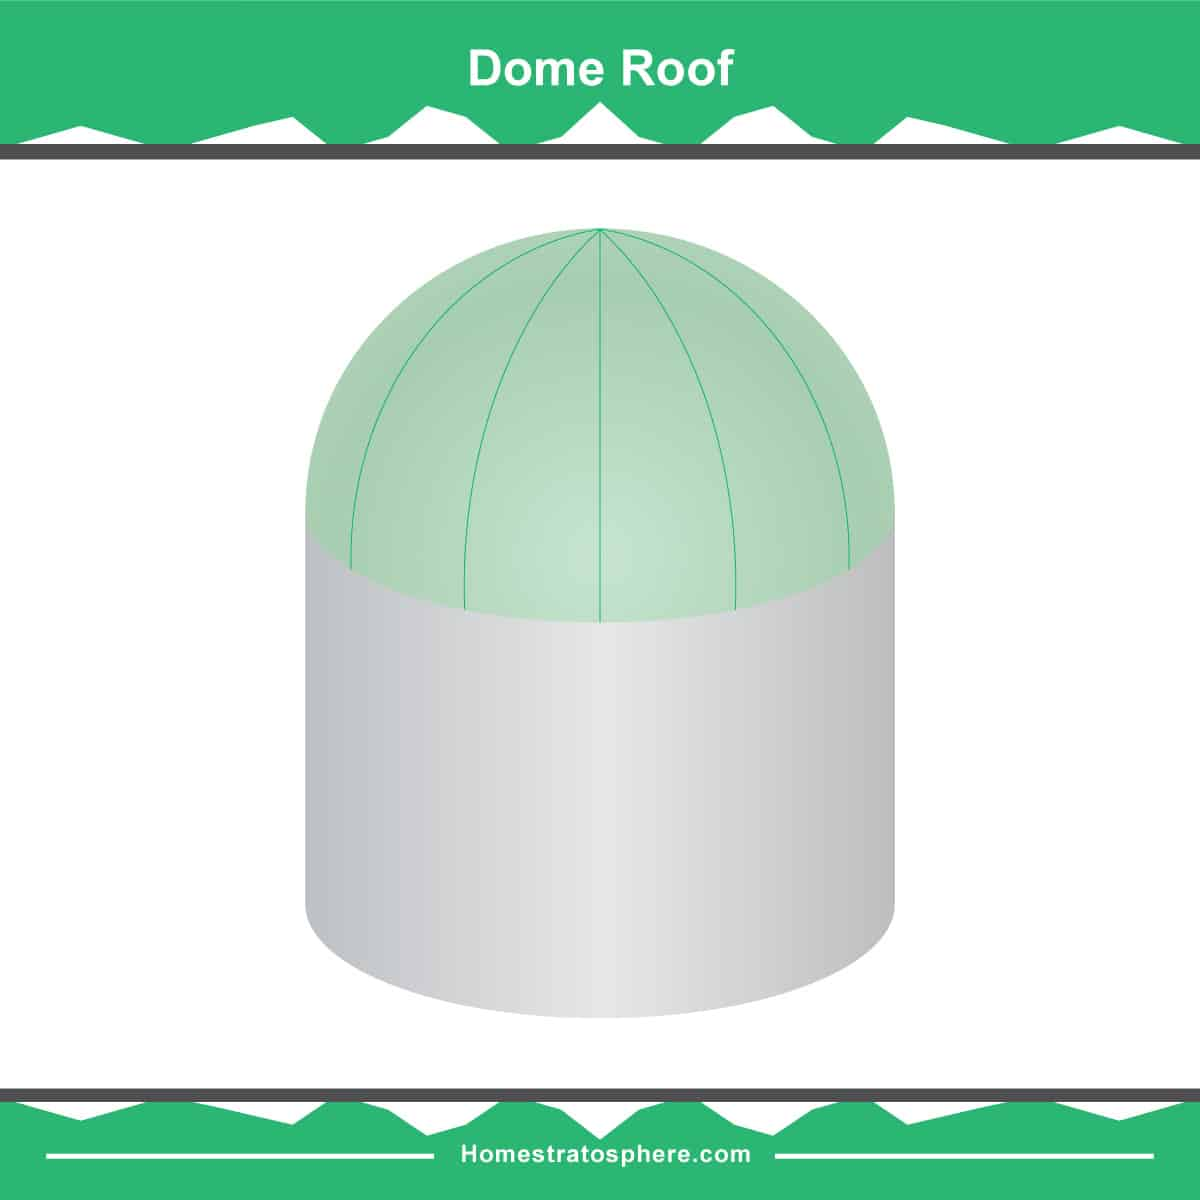 Dome roof diagram